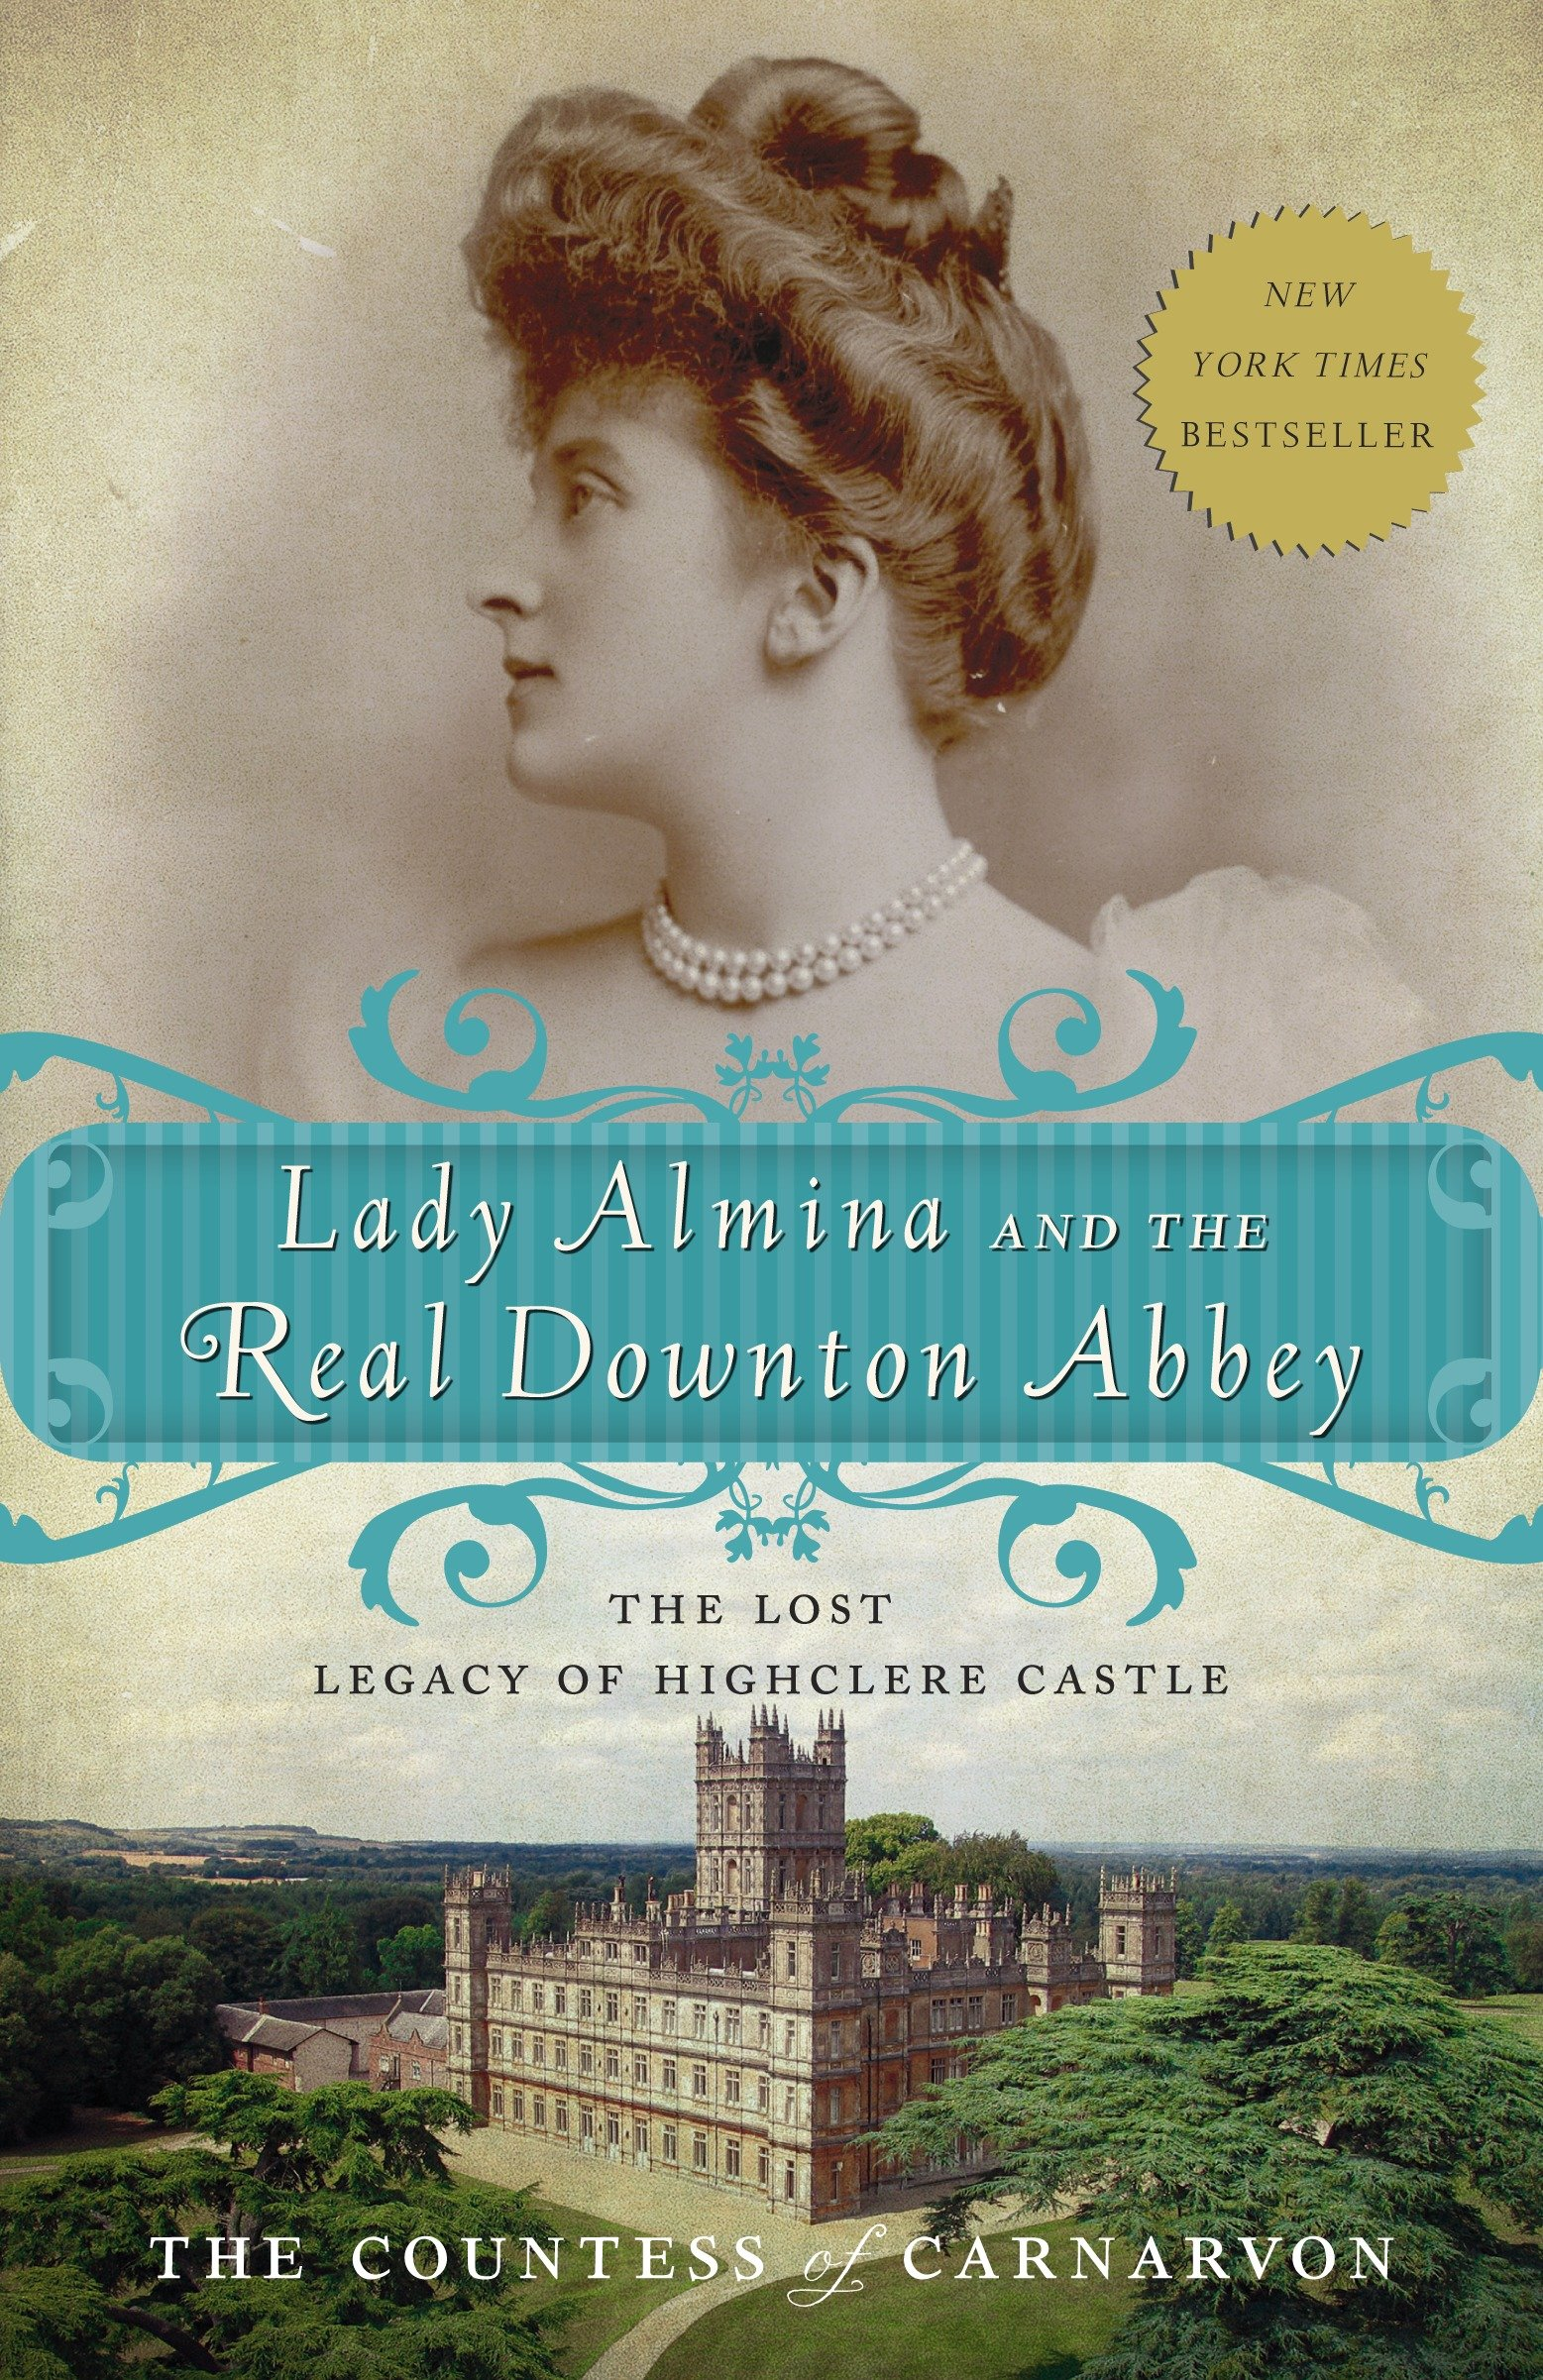 Lady Almina and the real Downton Abbey the lost legacy of Highclere Castle